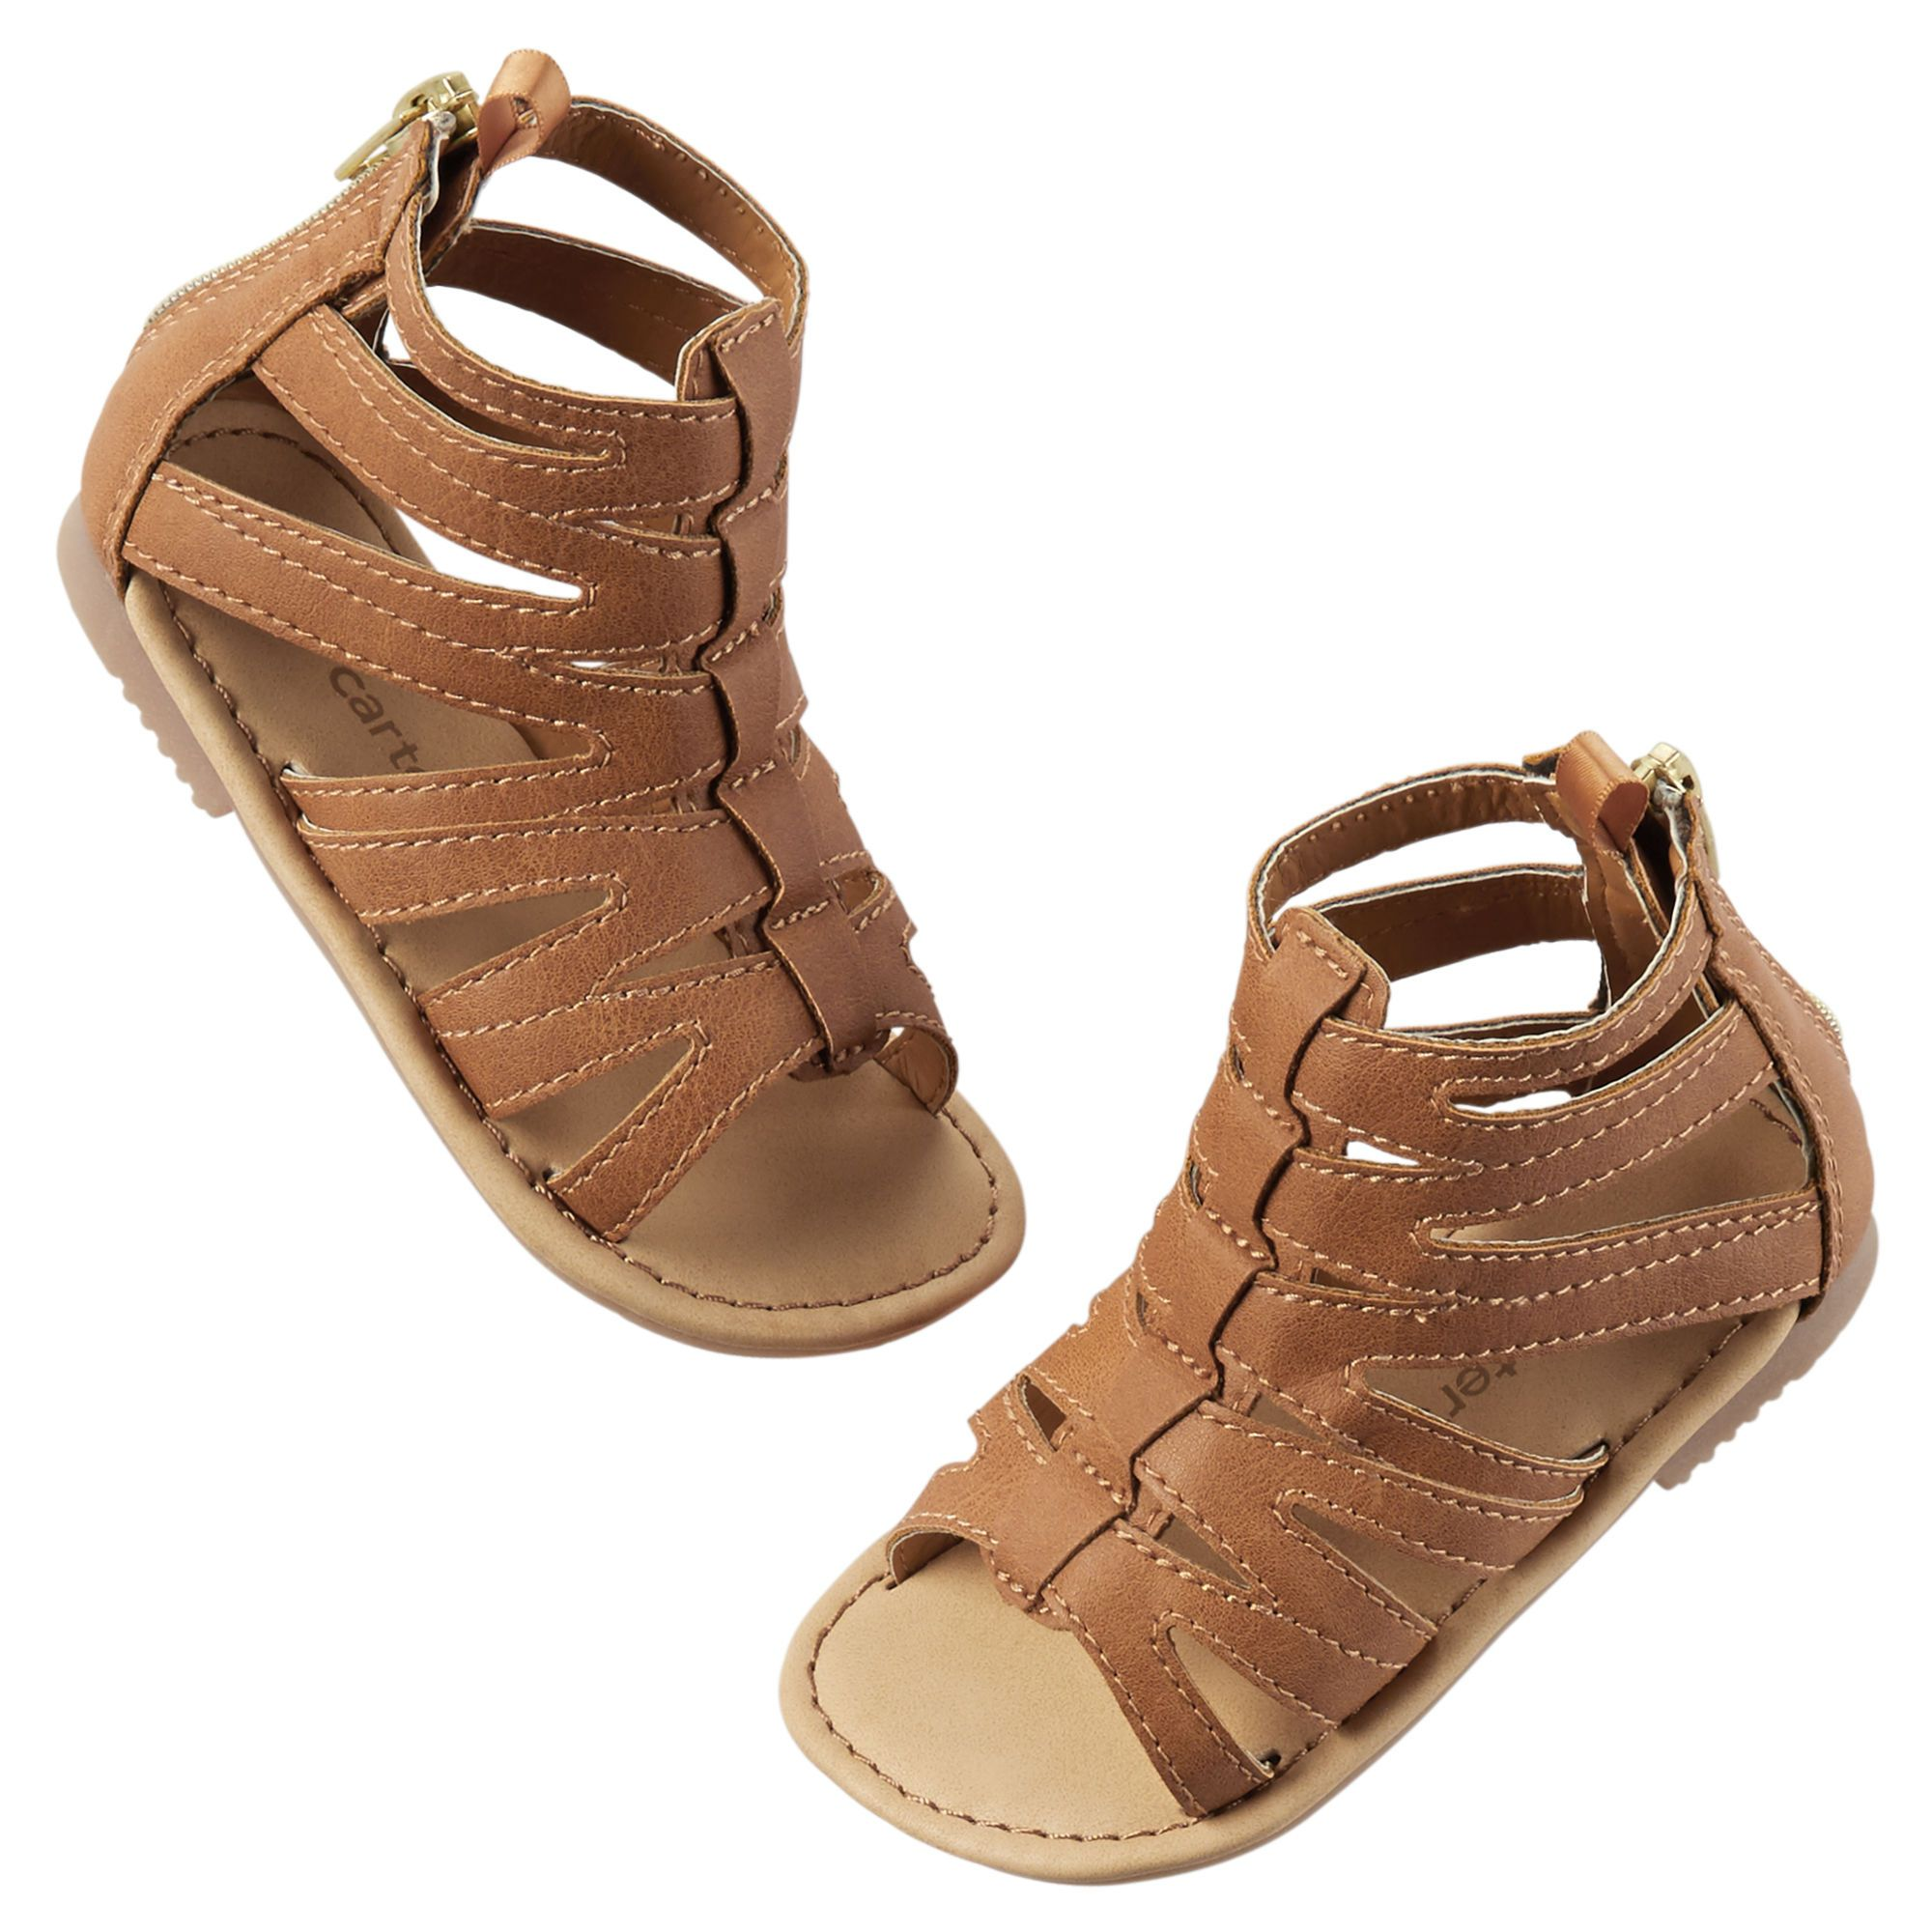 ae95b36e07f Carter s Gladiator Sandals